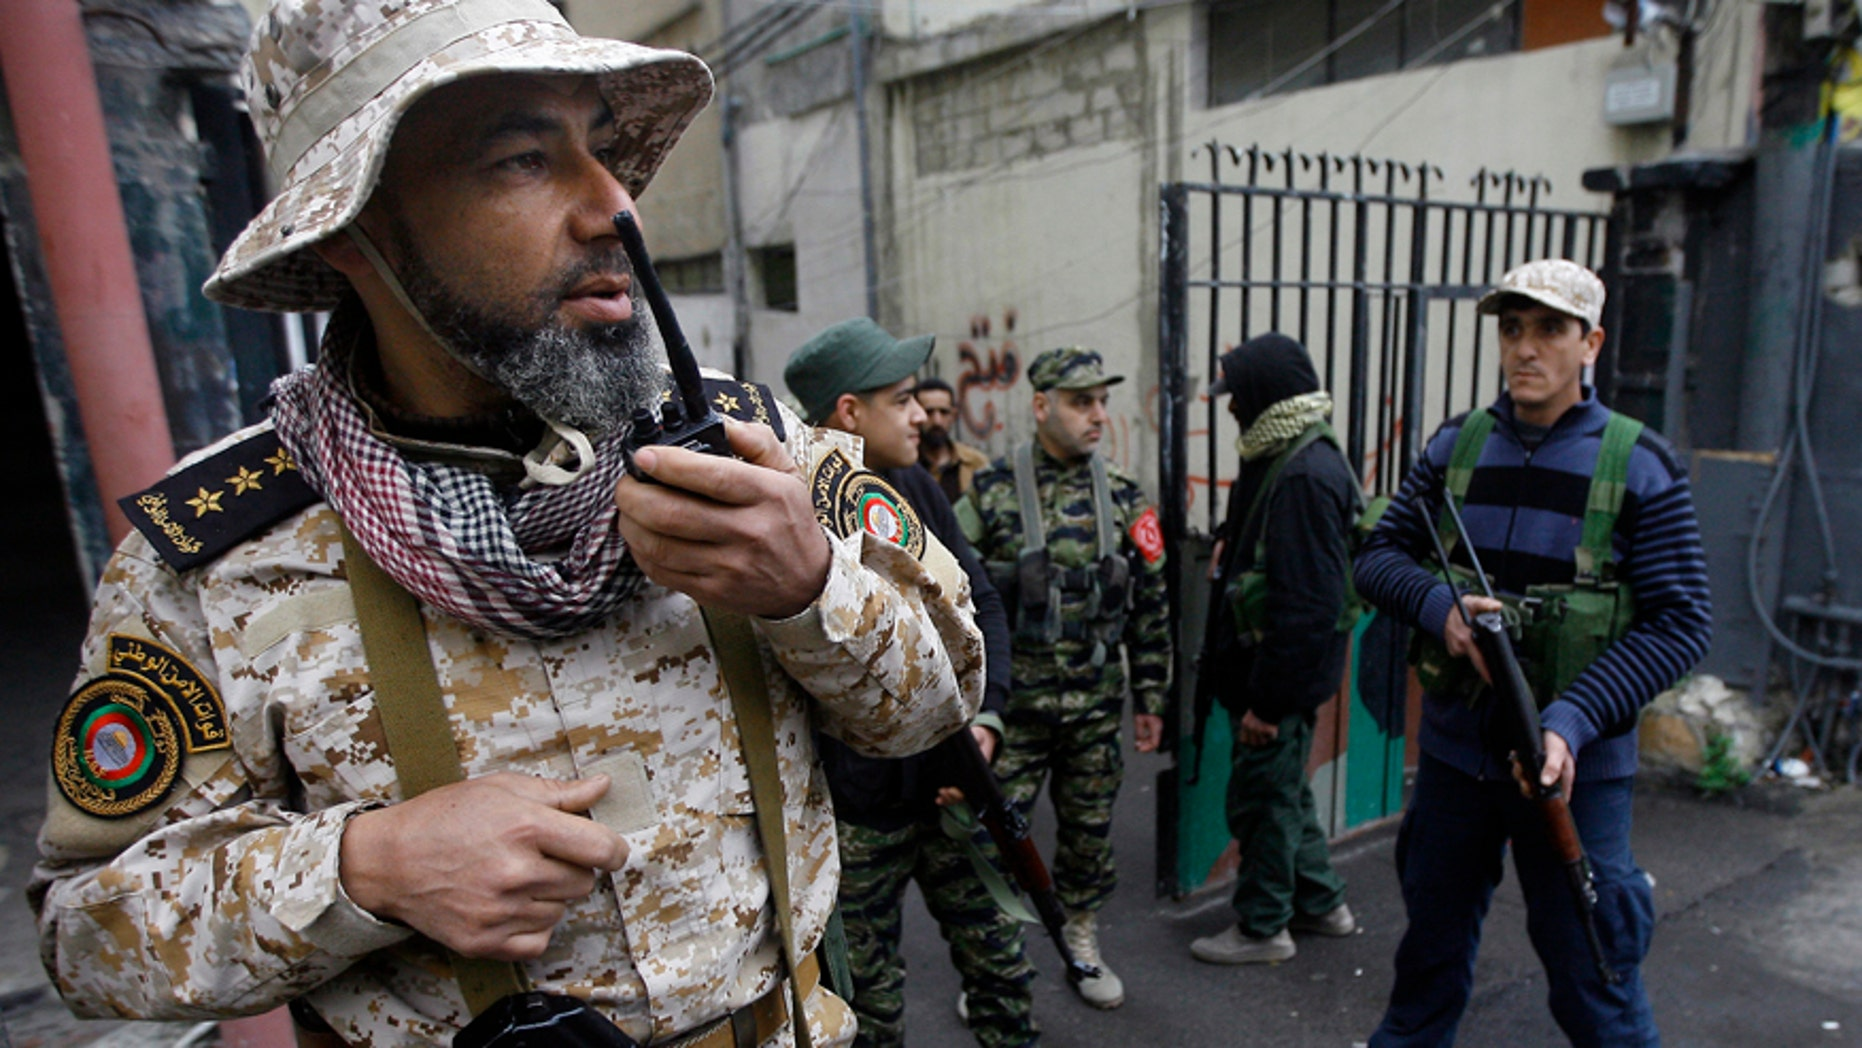 A Palestinian officer from the Fatah movement, speaks on a walkie talkie as others hold their weapons in the Ein el-Hilweh refugee camp, in the southern port city of Sidon, Lebanon, Wednesday, March. 1, 2017. The U.N. says it is suspending services in the conflict-torn Ein el-Hilweh Palestinian camp in south Lebanon for the third straight day. At least eight civilians, including a thirteen year old boy and a UN staffer, have been wounded in the latest round of violence to consume the camp, according to a statement released jointly by the U.N.'s child relief and Palestinian relief agencies, on Tuesday. (AP Photo/Mohammed Zaatari)